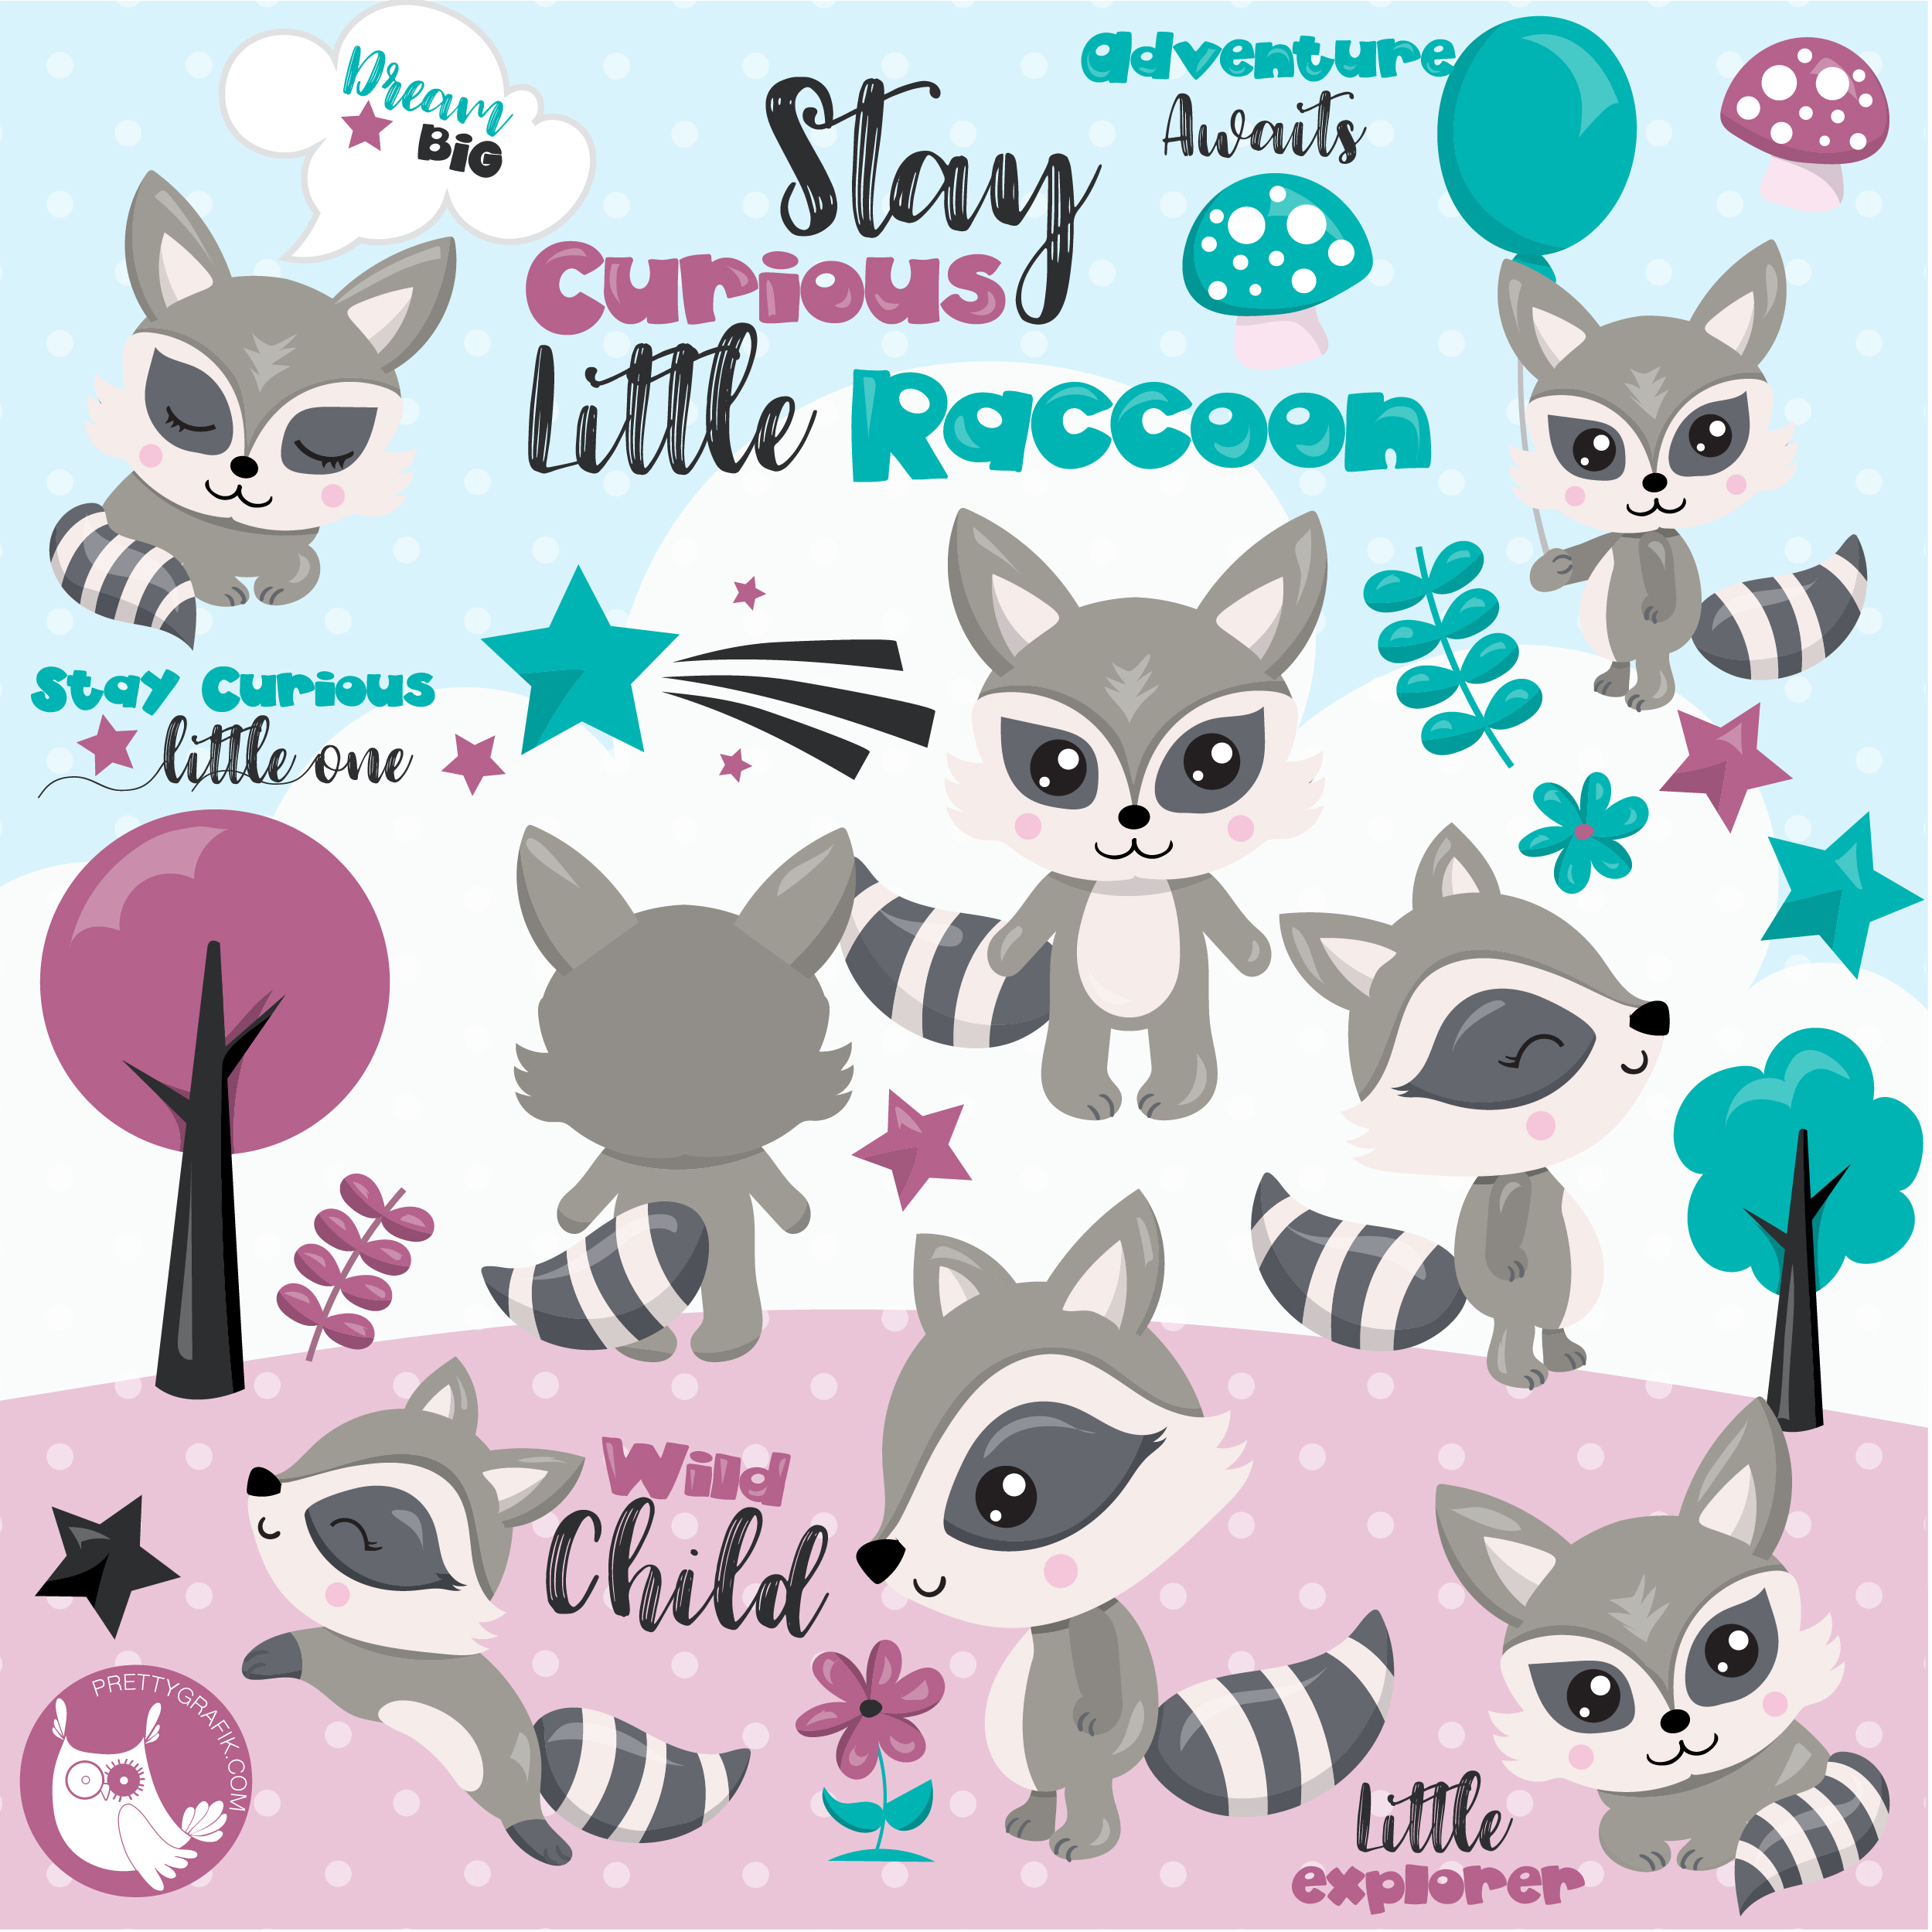 Woodlnd raccoon clipart picture royalty free download Woodland raccoon clipart picture royalty free download